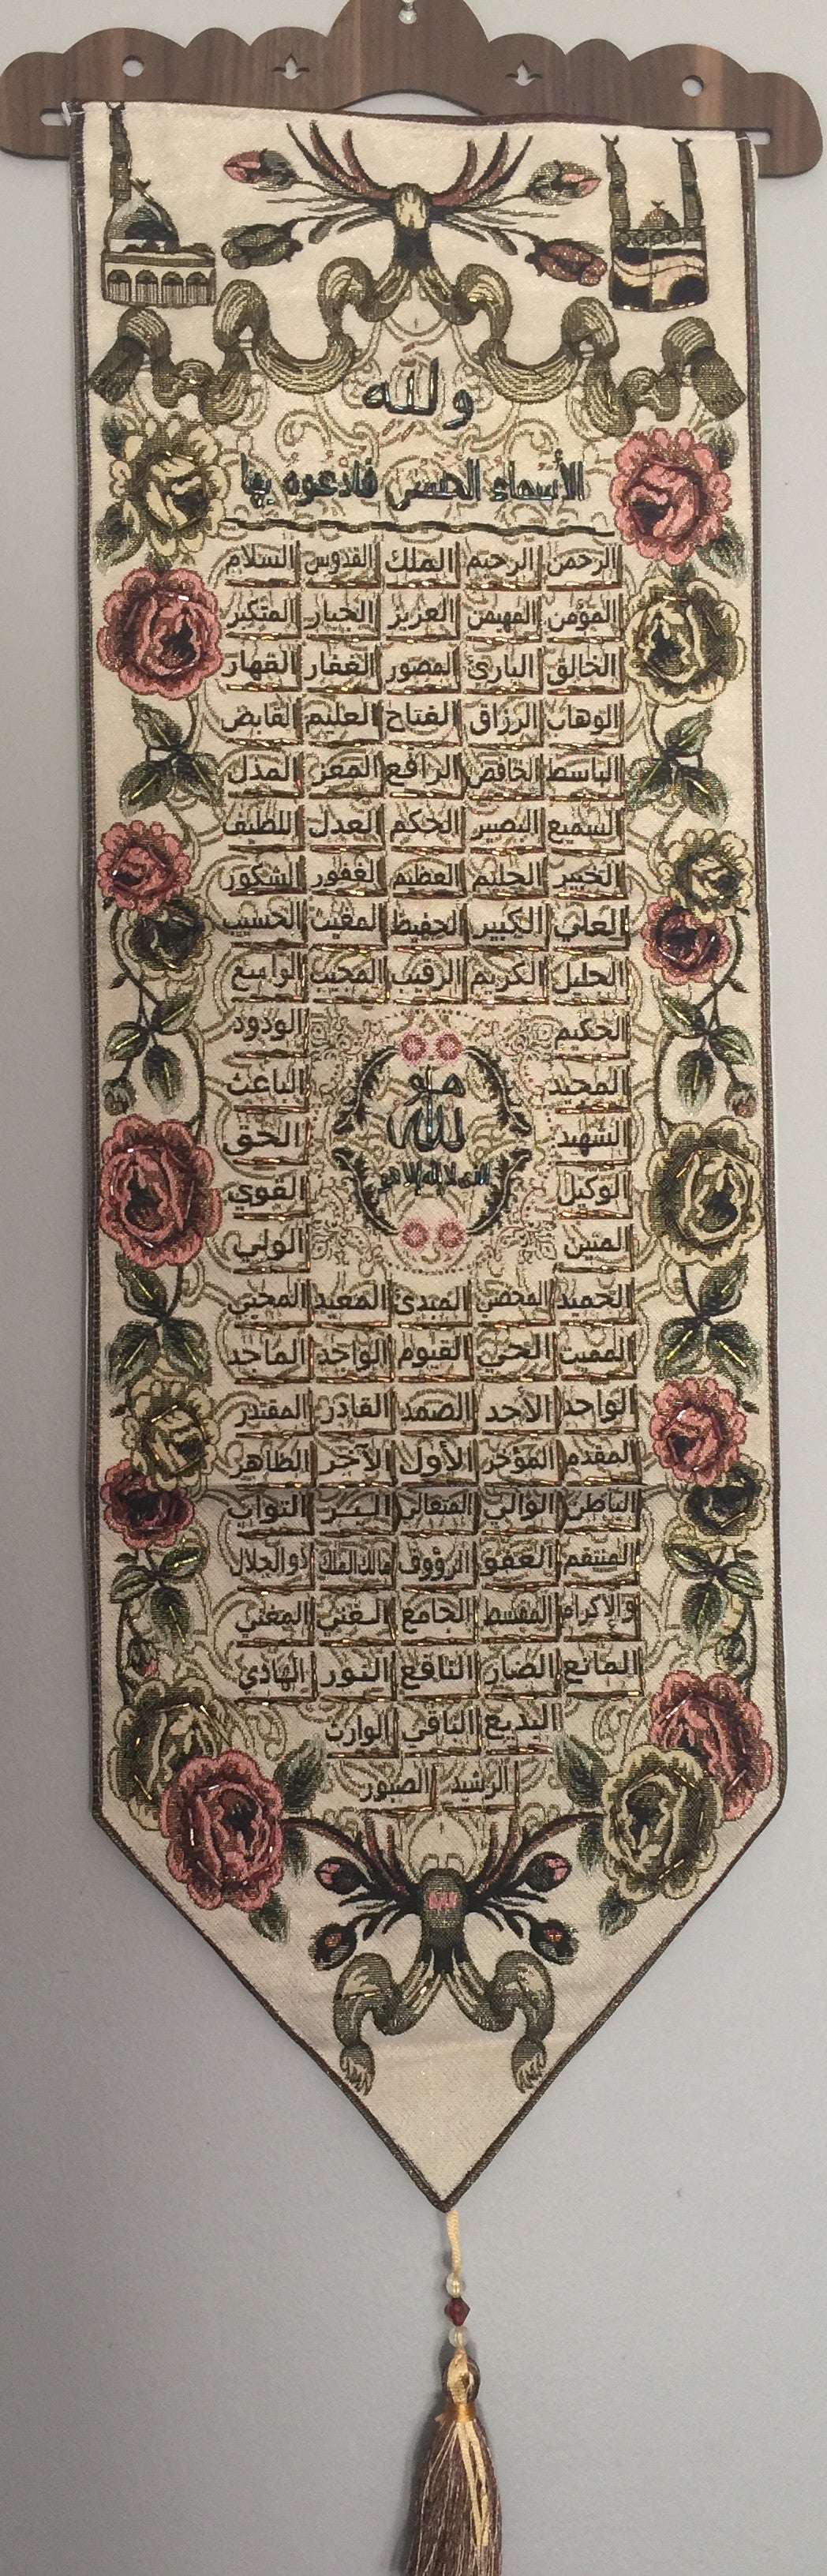 Asma Ul Husna 99 Names Of Allah Wall Hanging Fabric Decor With Hand Woven  Beads And ...